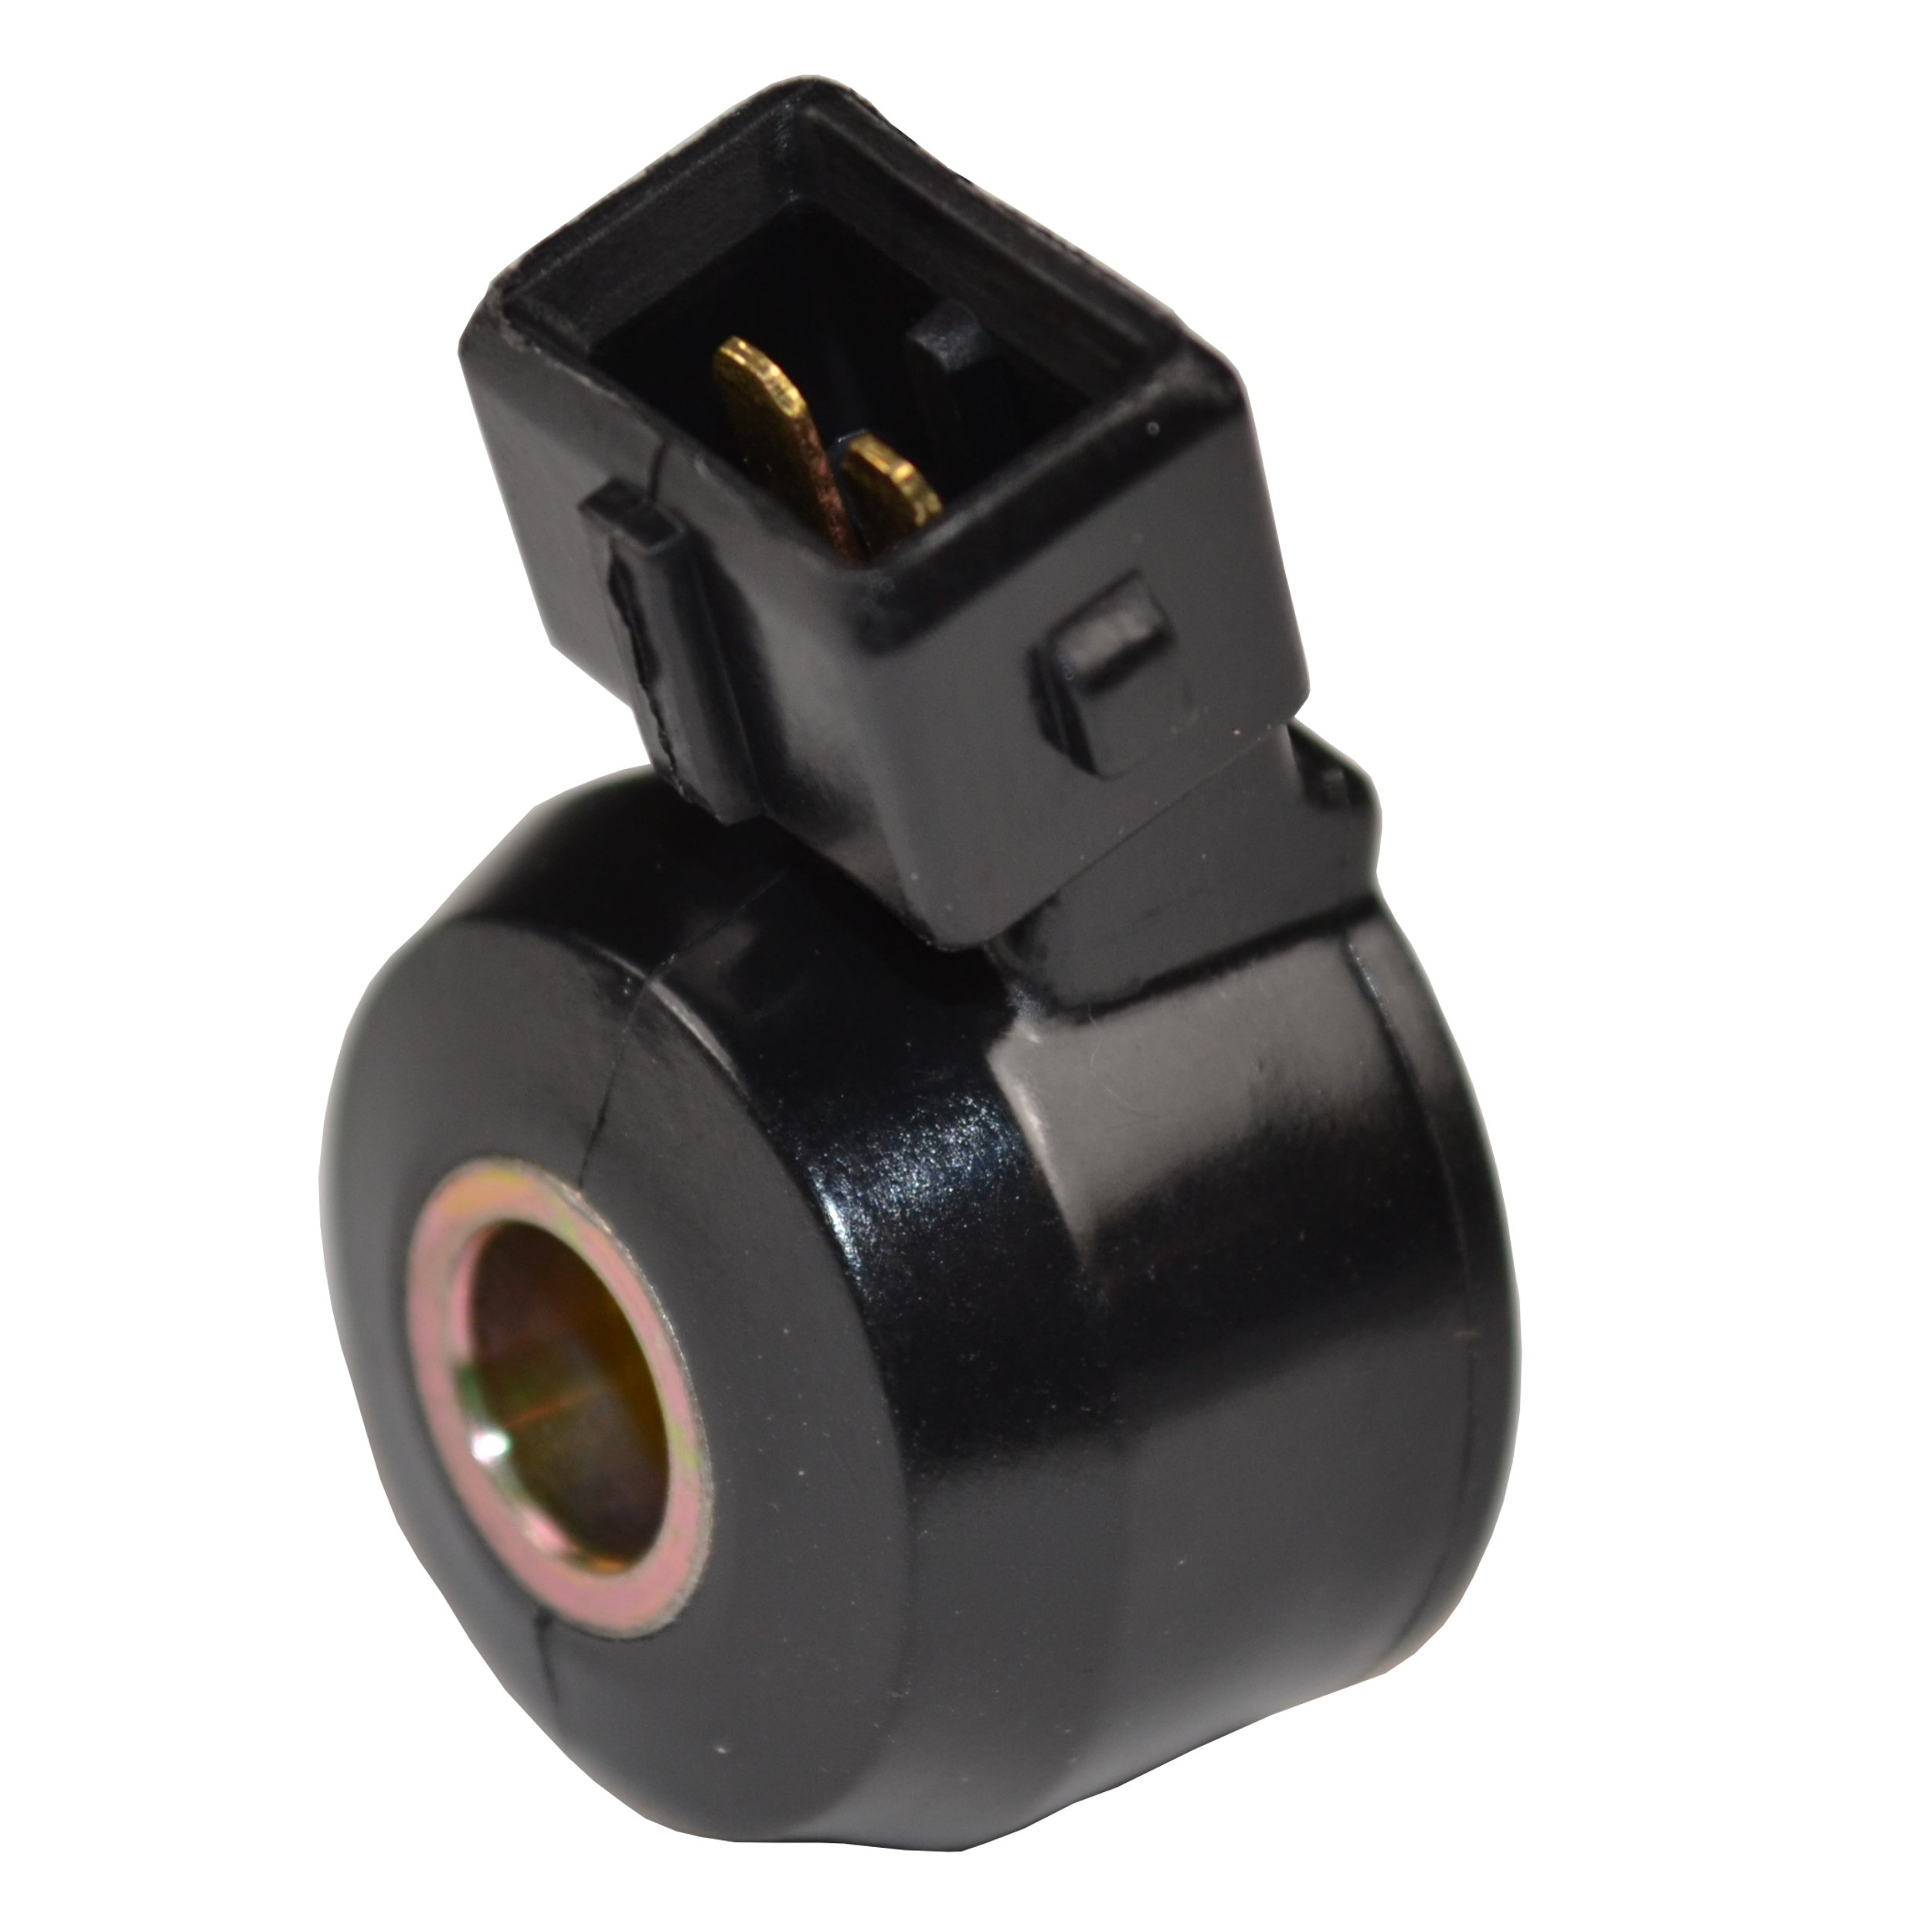 Best Rated In Automotive Replacement Detonation Sensors Helpful Engine Knock Sensor Wiring Harness For Toyota Lexus 82219 07010 Ebay Hqrp Nissan Altima 1999 2000 2001 99 00 01 Plus Coaster Product